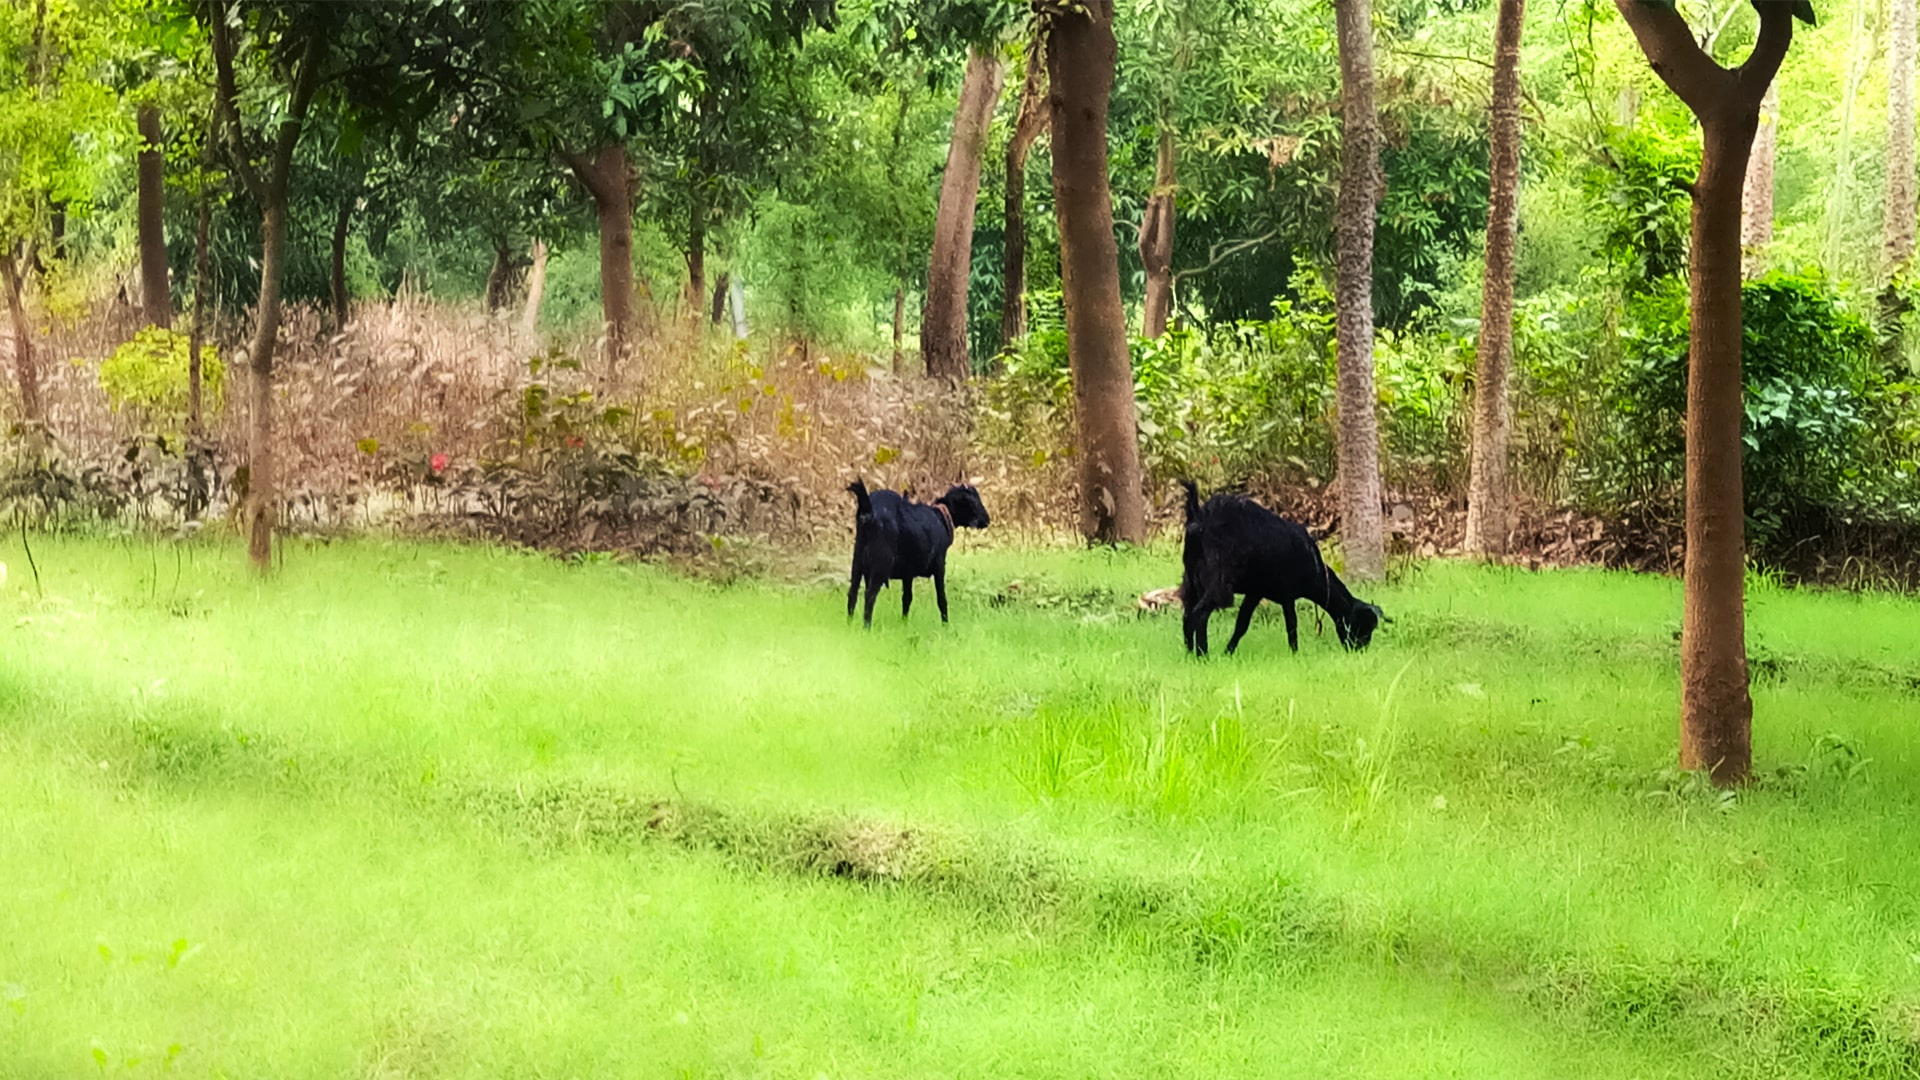 Goat Eating Green Grass in Forest Photoshop Editing Photo